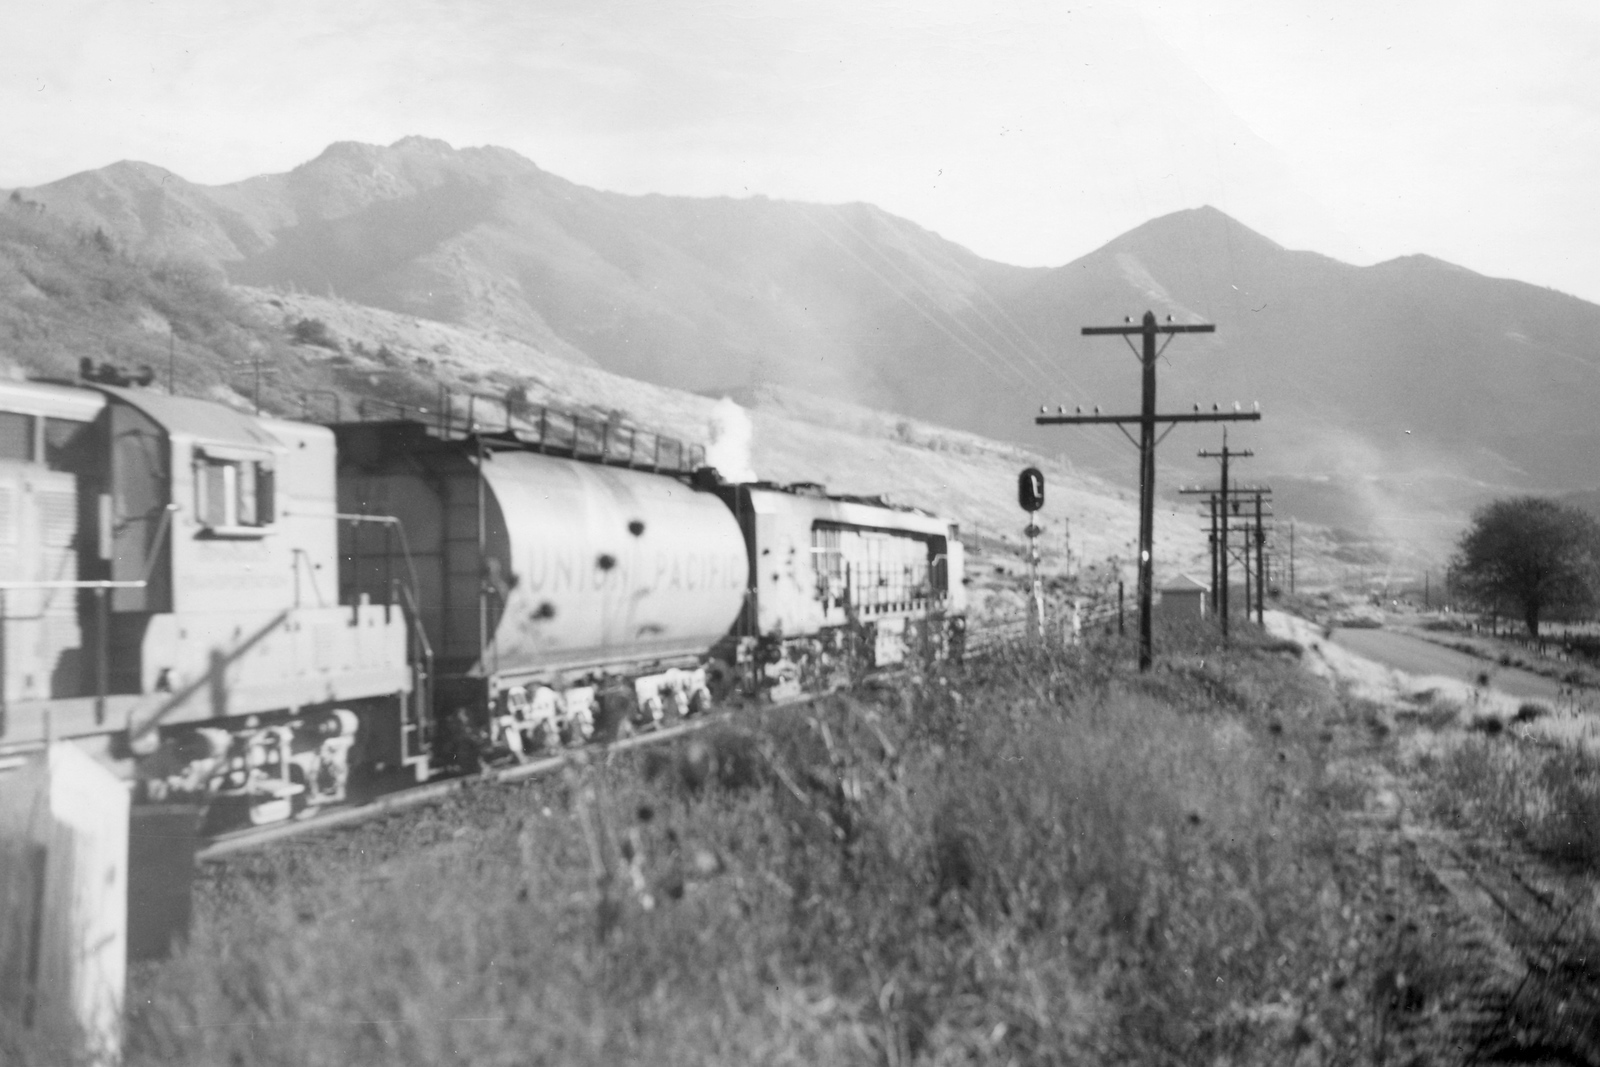 UP_turbine_70-with-train-rear_Uintah_Dave-England-photo